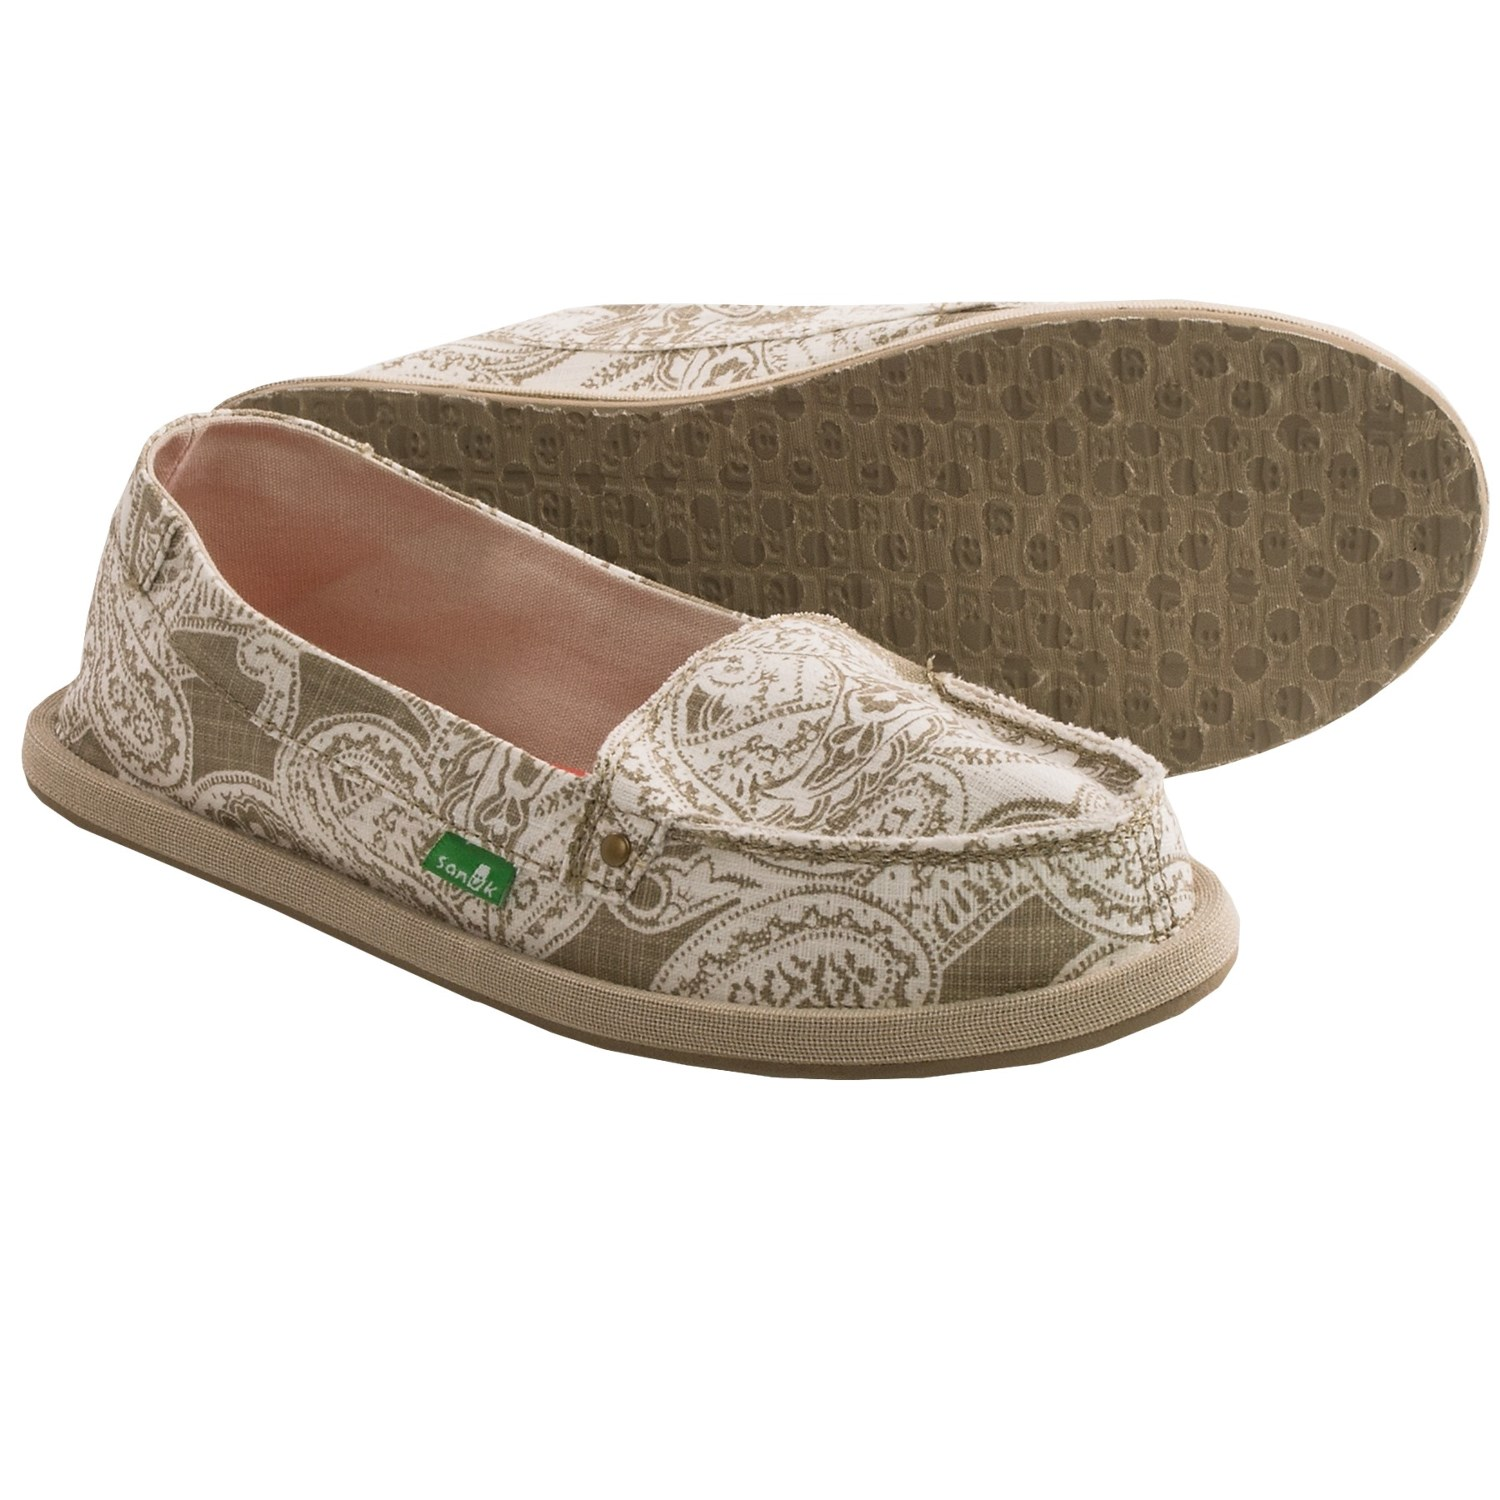 Sanuk Shorty Wrapped Shoes - Slip-Ons (For Women) in Natural - Closeouts